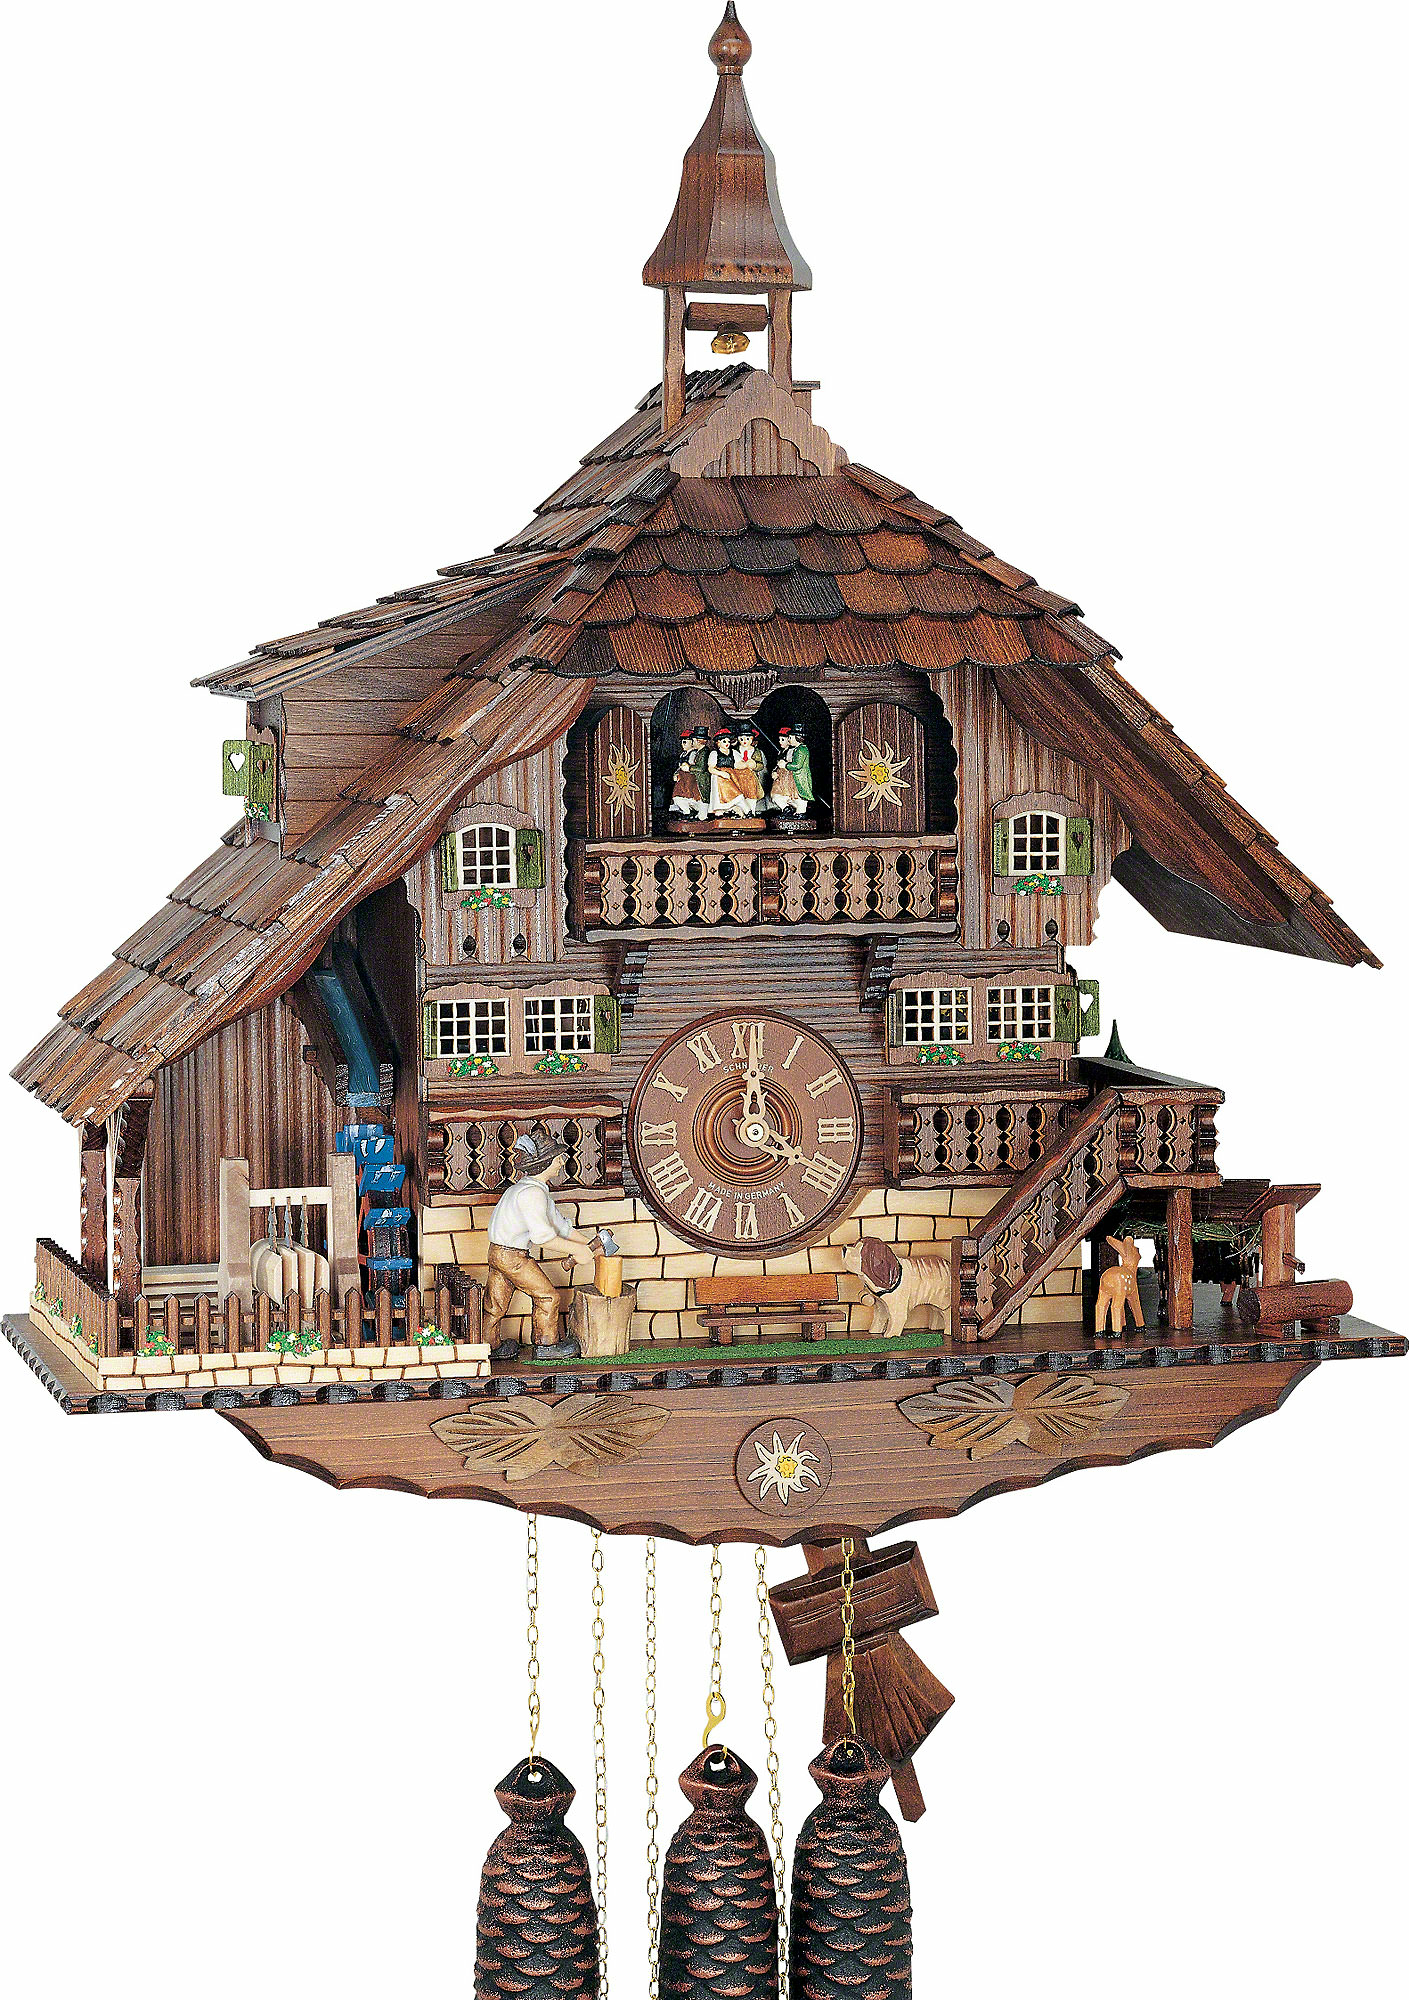 Cuckoo clock 8 day movement chalet style 58cm by anton How to make a cuckoo clock